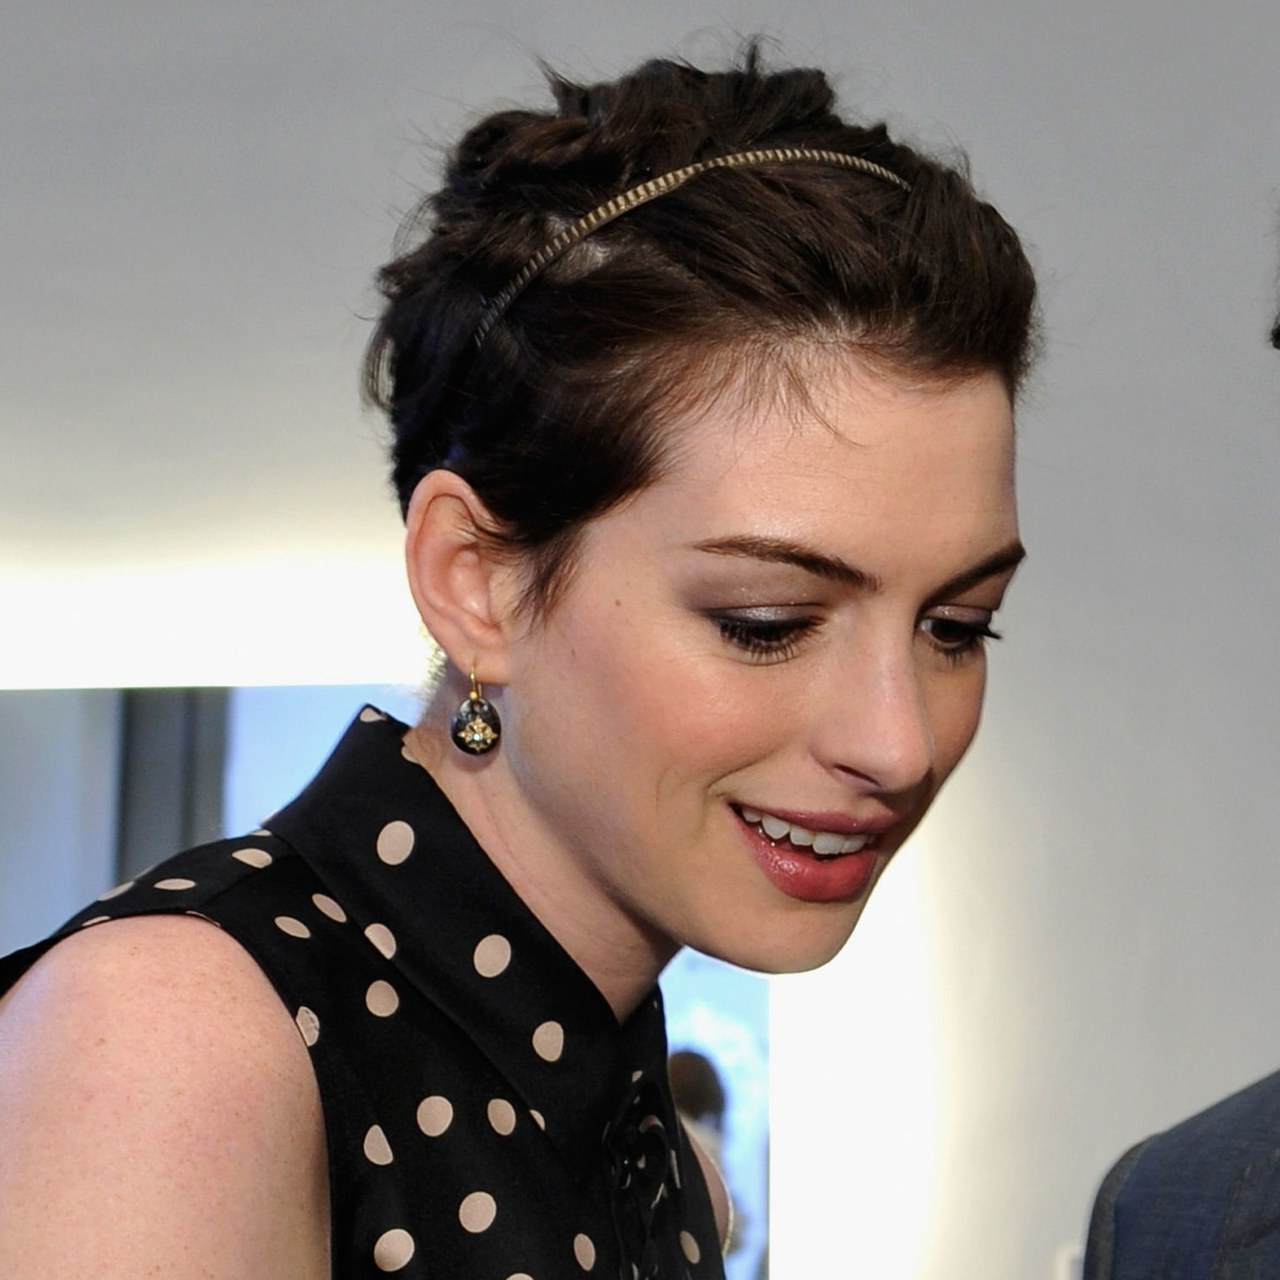 Anne Hathaway Uses A Headband To Create A Cute Hairstyle For Her Regarding Short Hairstyles With Headband (Gallery 7 of 25)